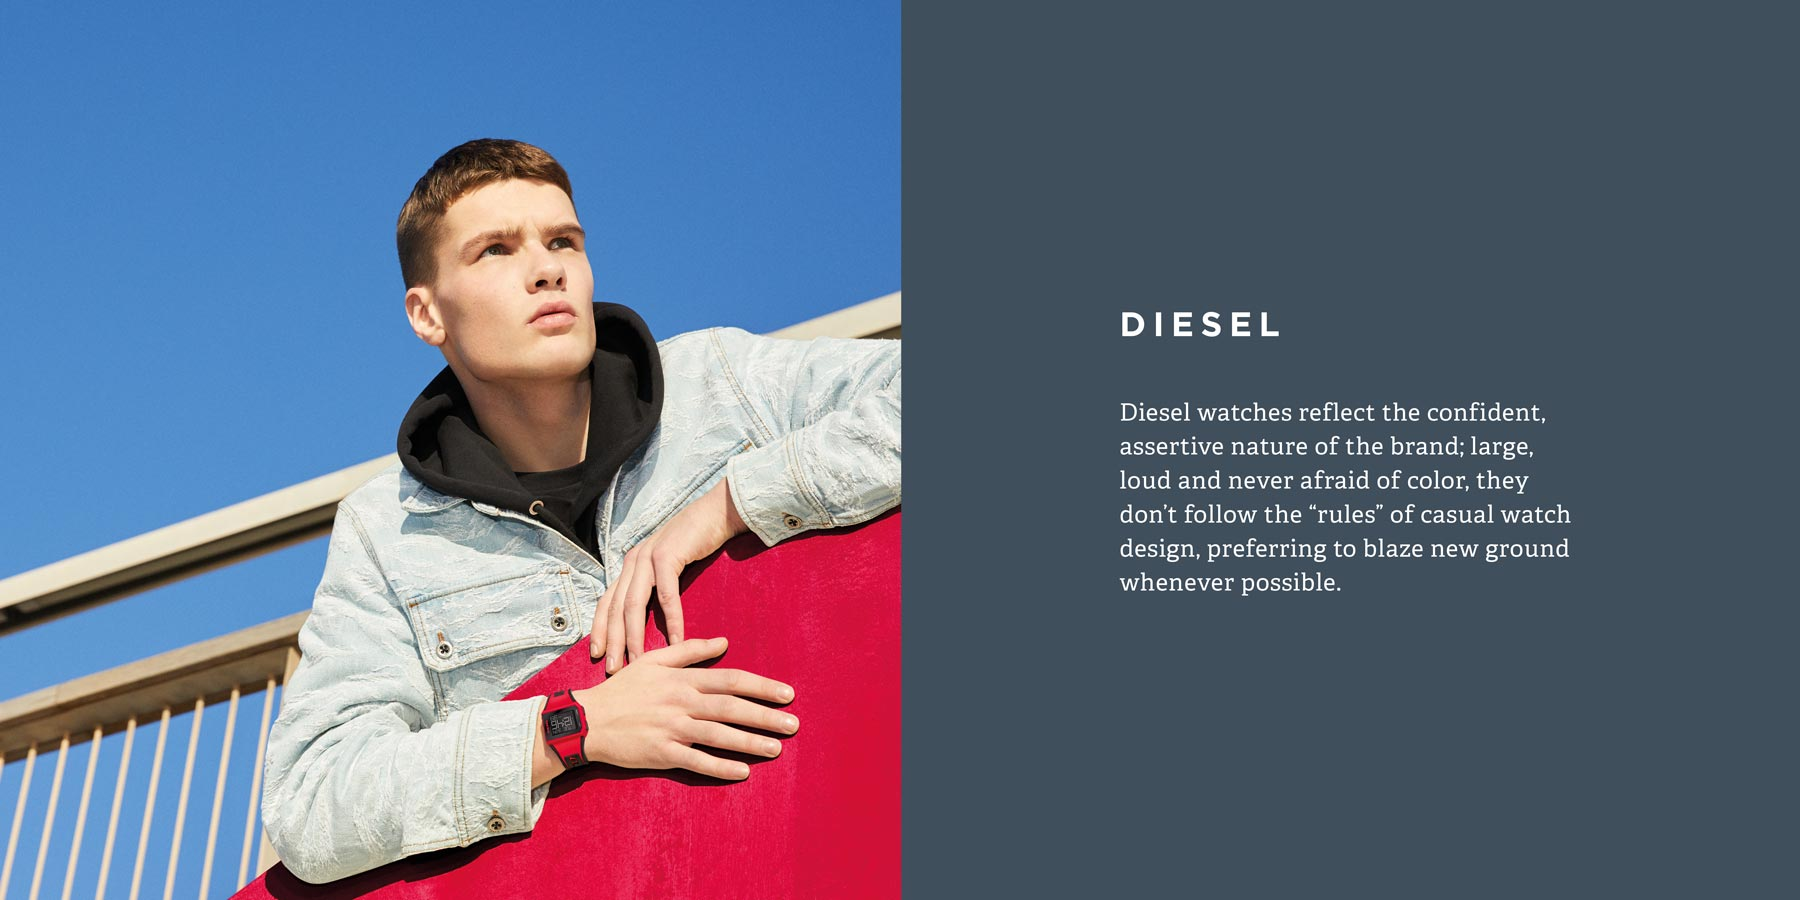 "Diesel watches reflect the confident, assertive nature of the brand; large, loud and never afraid of color, they don't follow the ""rules"" of casual watch design, preferring to blaze new ground whenever possible."